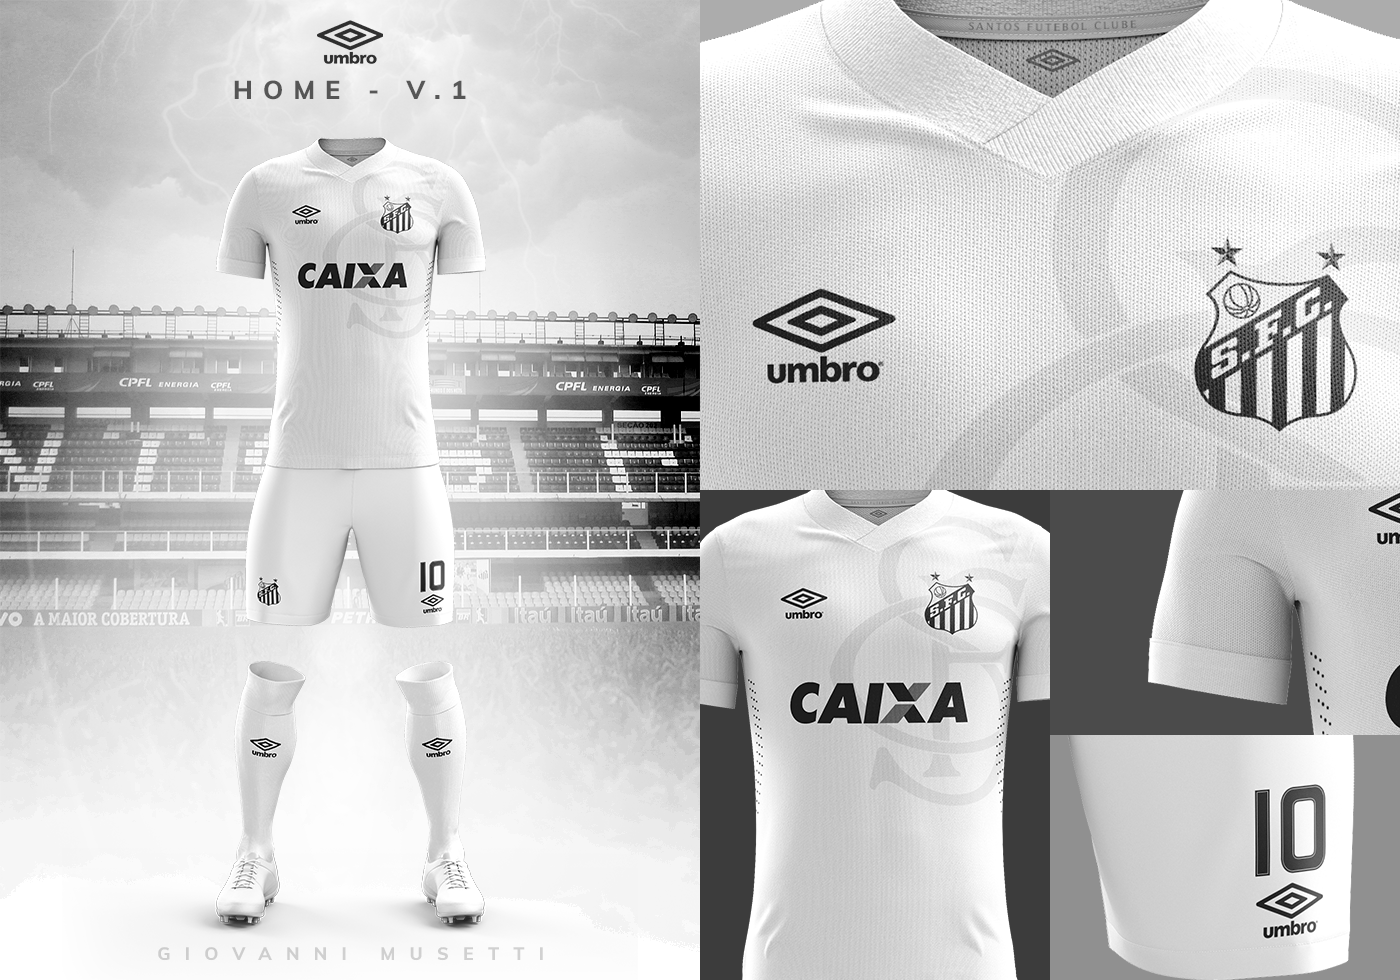 Santos F.C. - Umbro Concept Kit 2018. Giovanni Musetti •. Follow Following  Unfollow. Save to Collection 2f6ba293b